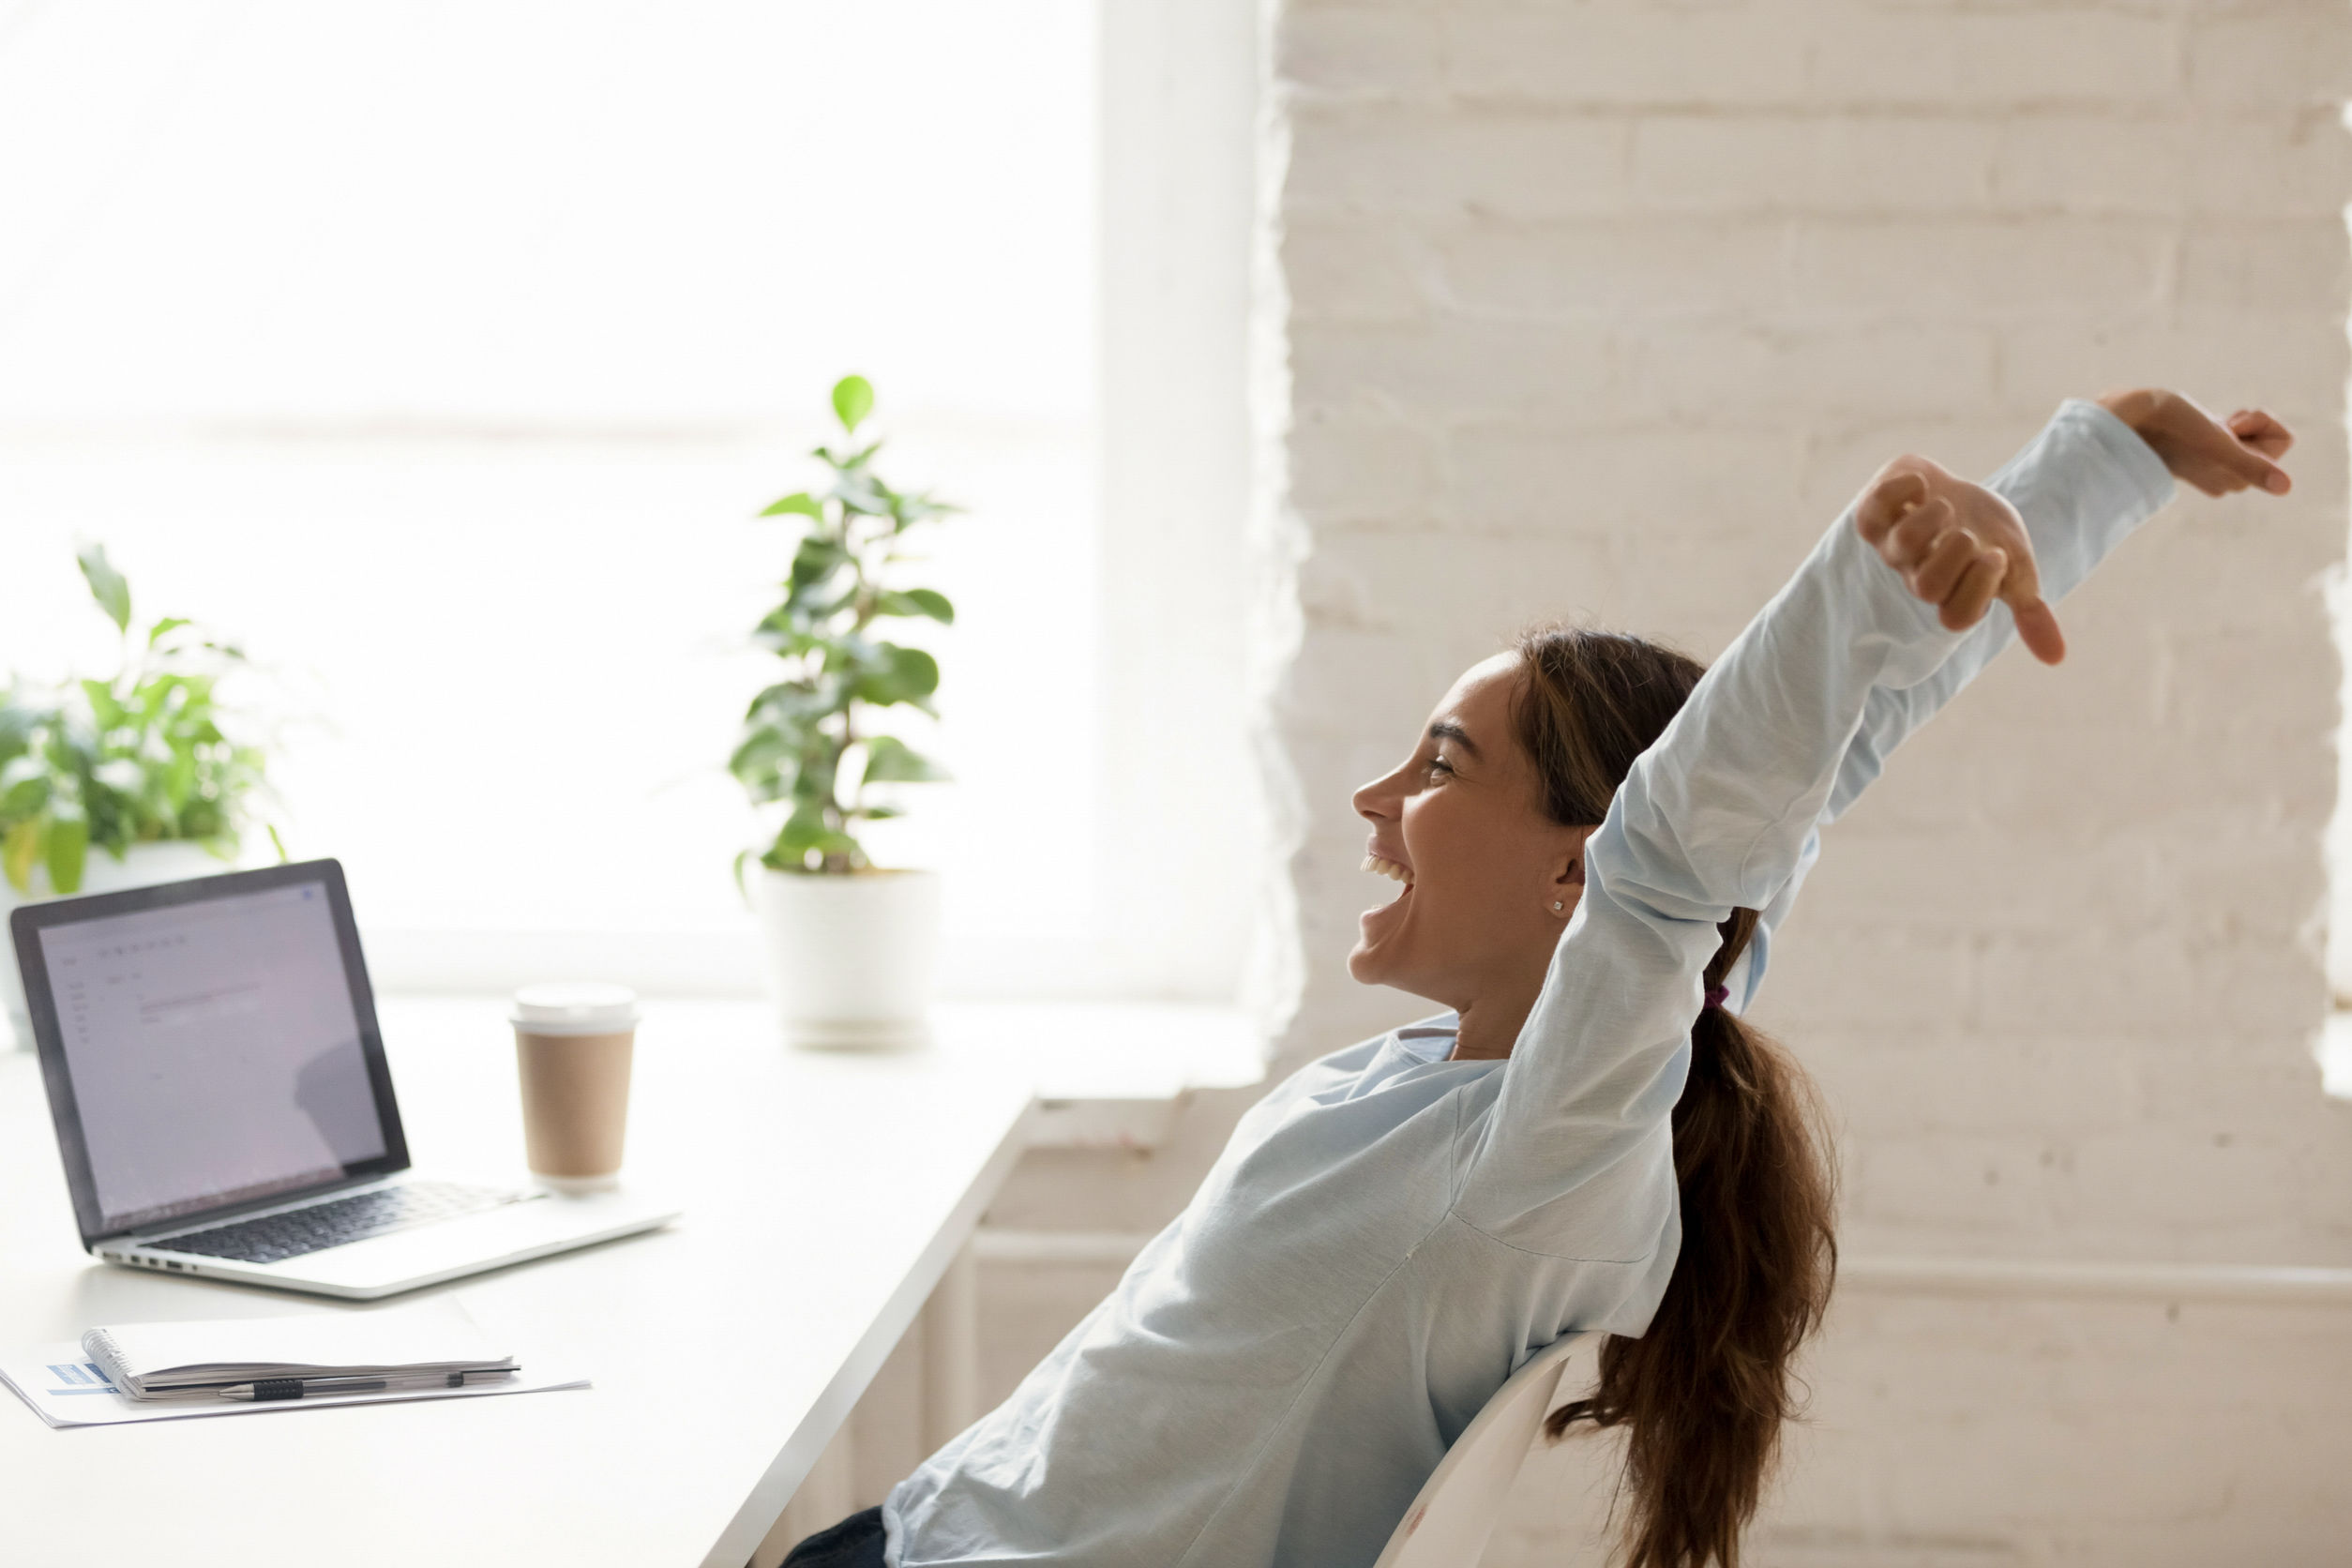 Cheerful woman stretching raising hands up sitting at workplace